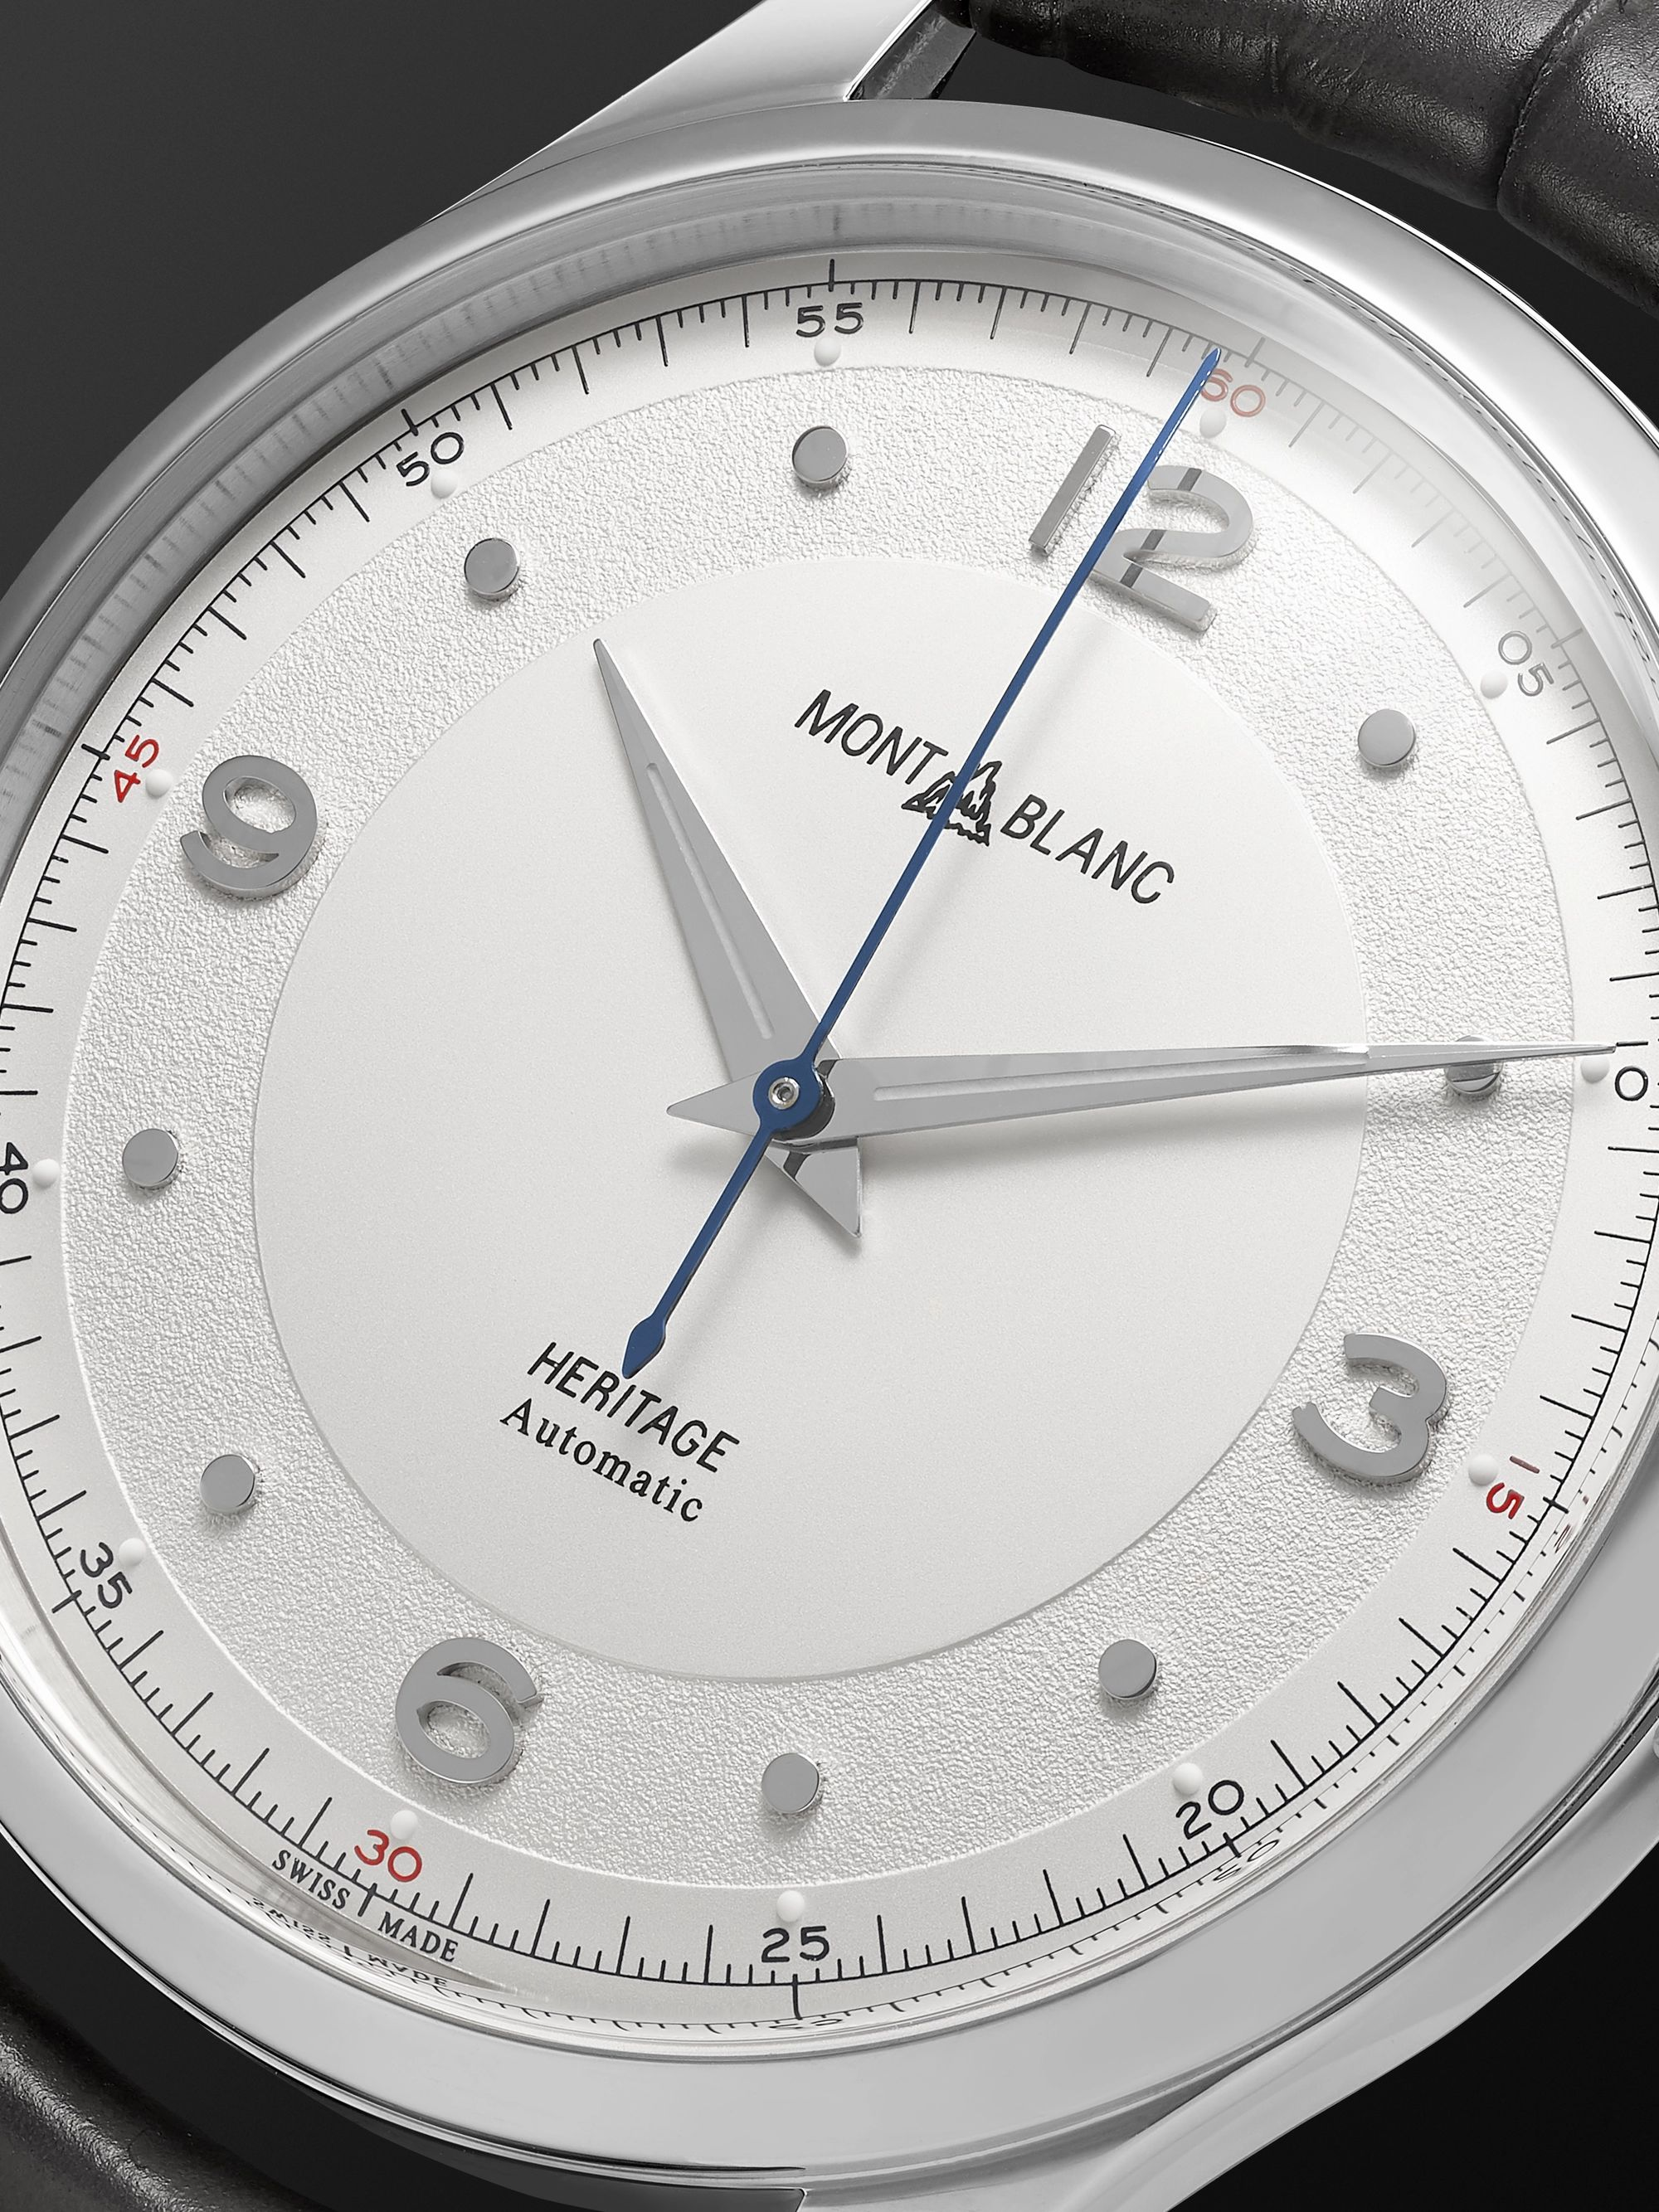 Montblanc Heritage Automatic 40mm Stainless Steel and Alligator Watch, Ref. No. 119943